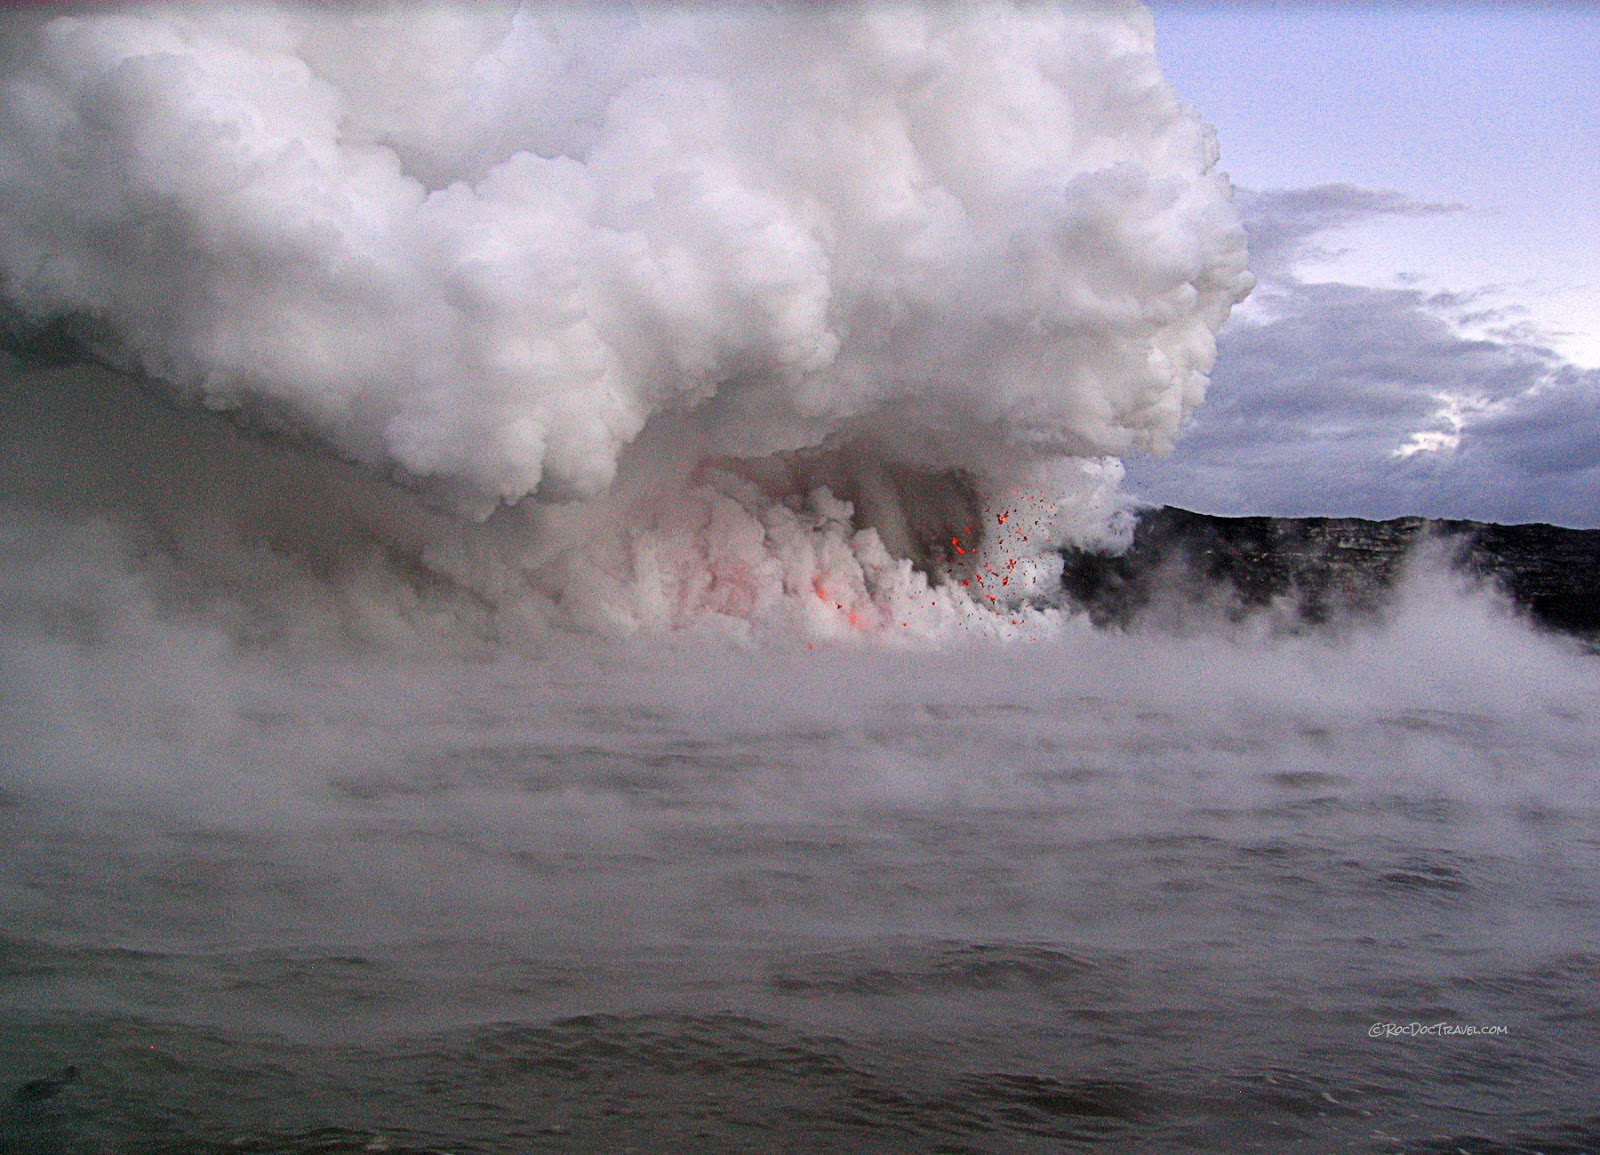 Kilauea volcano geology tour helicopter boat lava ocean entry photographs copyright RocDocTravel.com